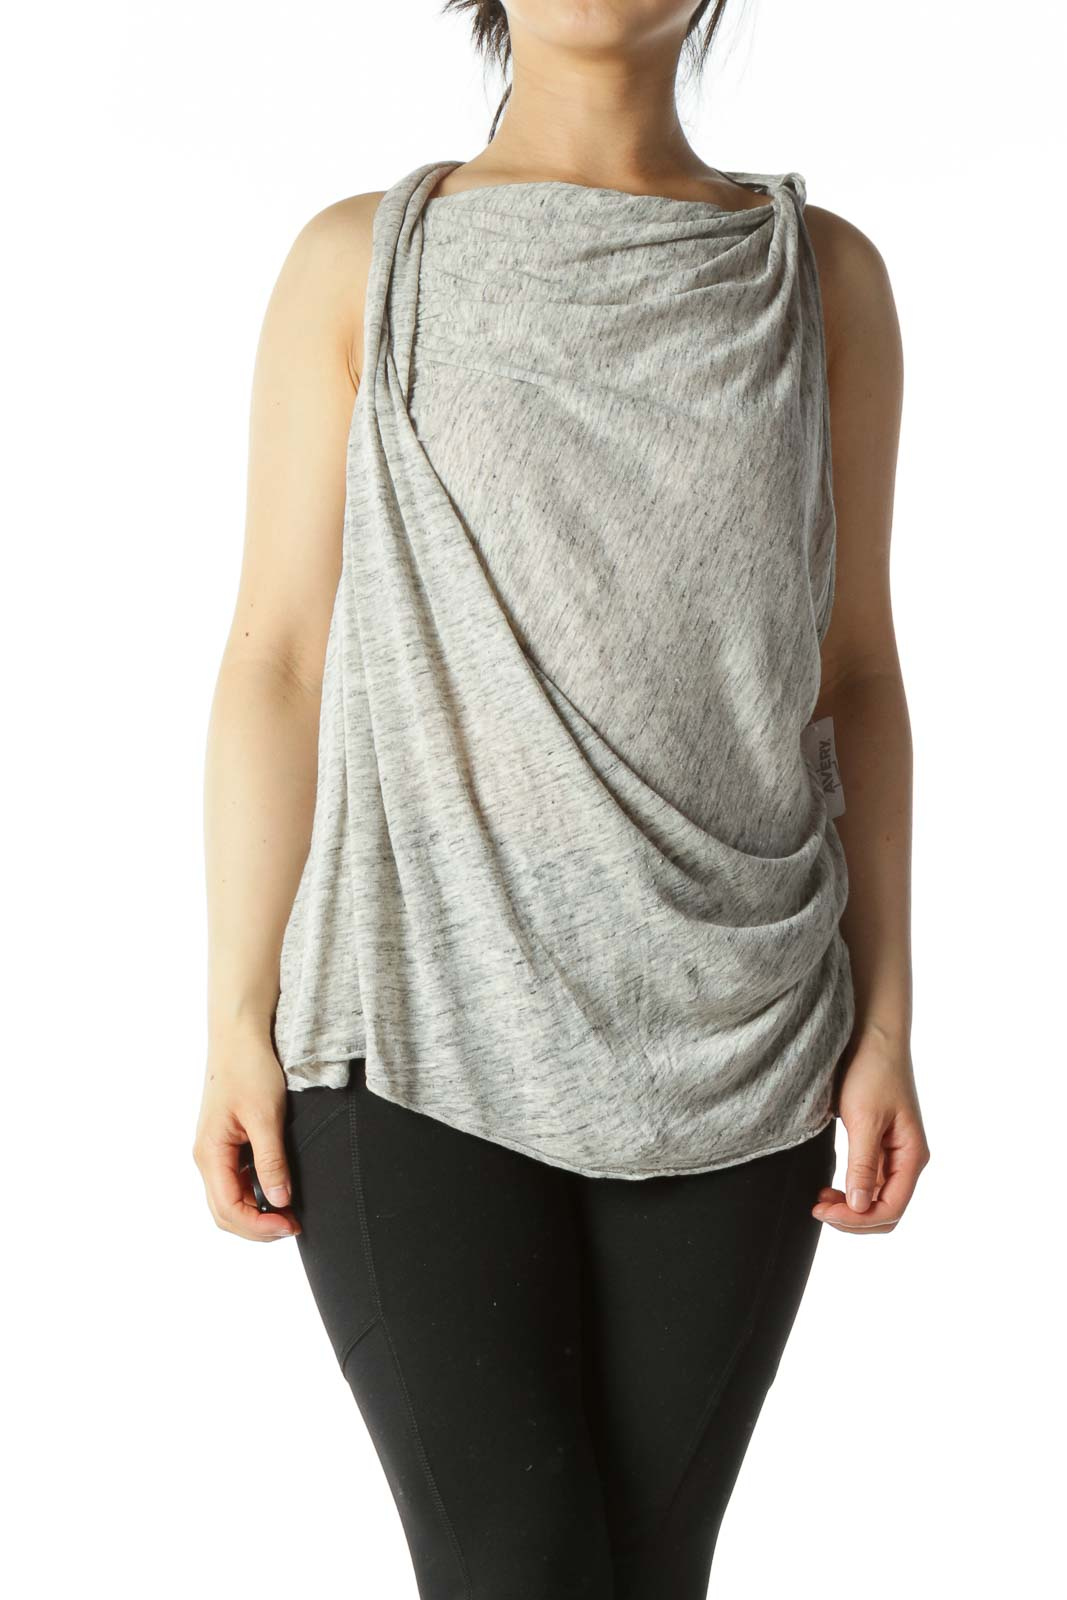 Heather Grey Cowl-Neck Draped Sleeveless Top Front